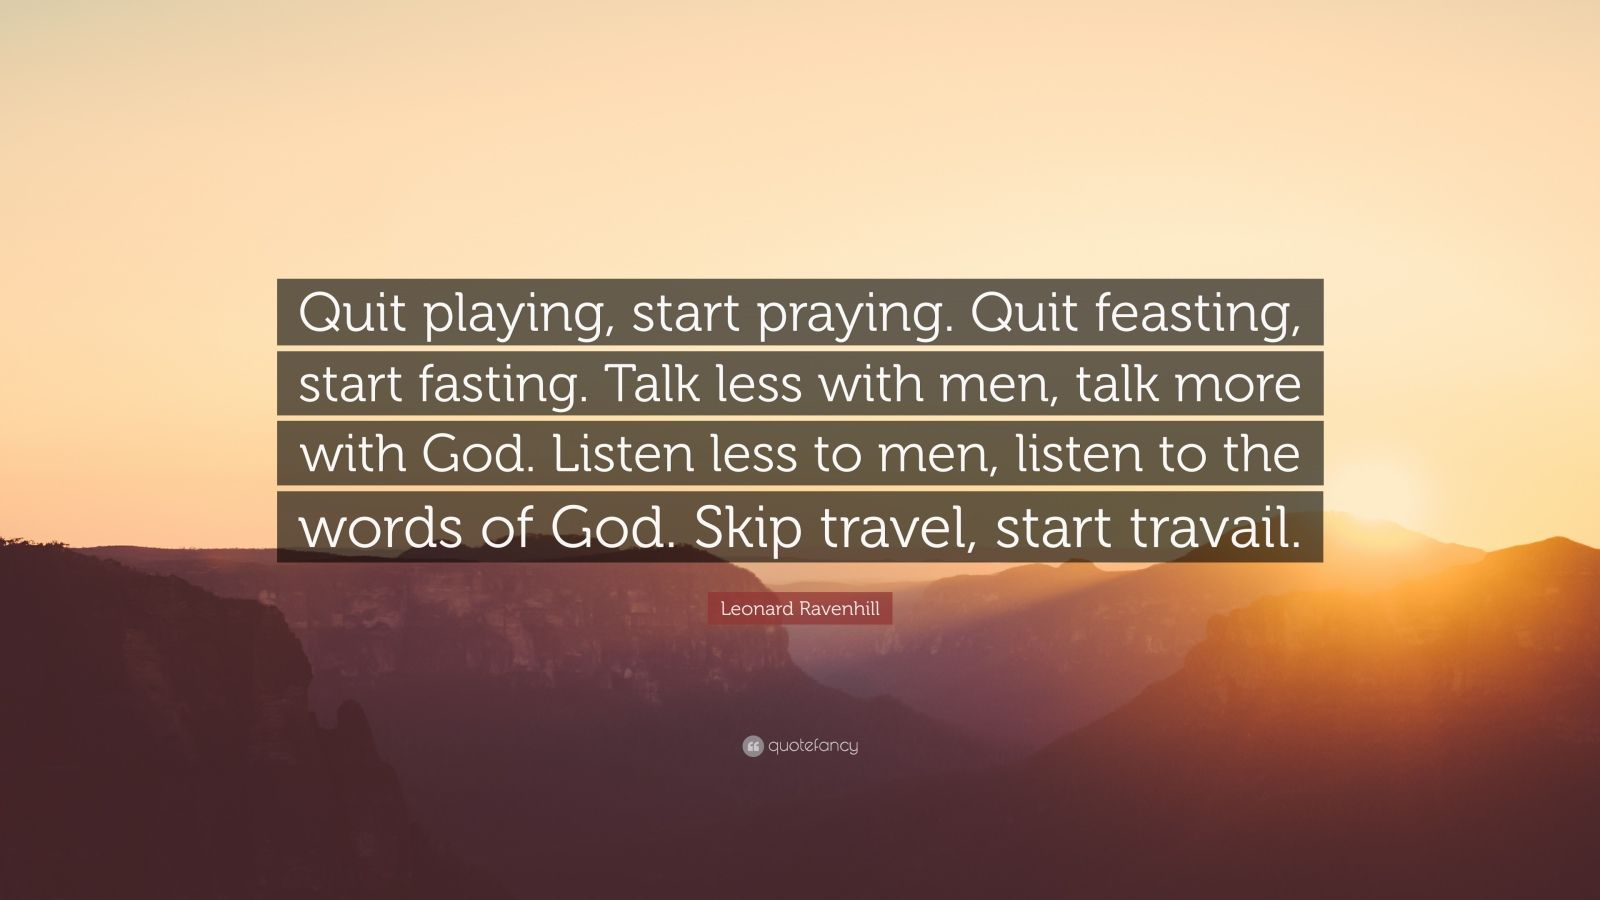 """Leonard Ravenhill Quote: """"Quit playing, start praying. Quit feasting, start fasting. Talk less with men, talk more with God. Listen less to men, listen to the words of God. Skip travel, start travail."""""""